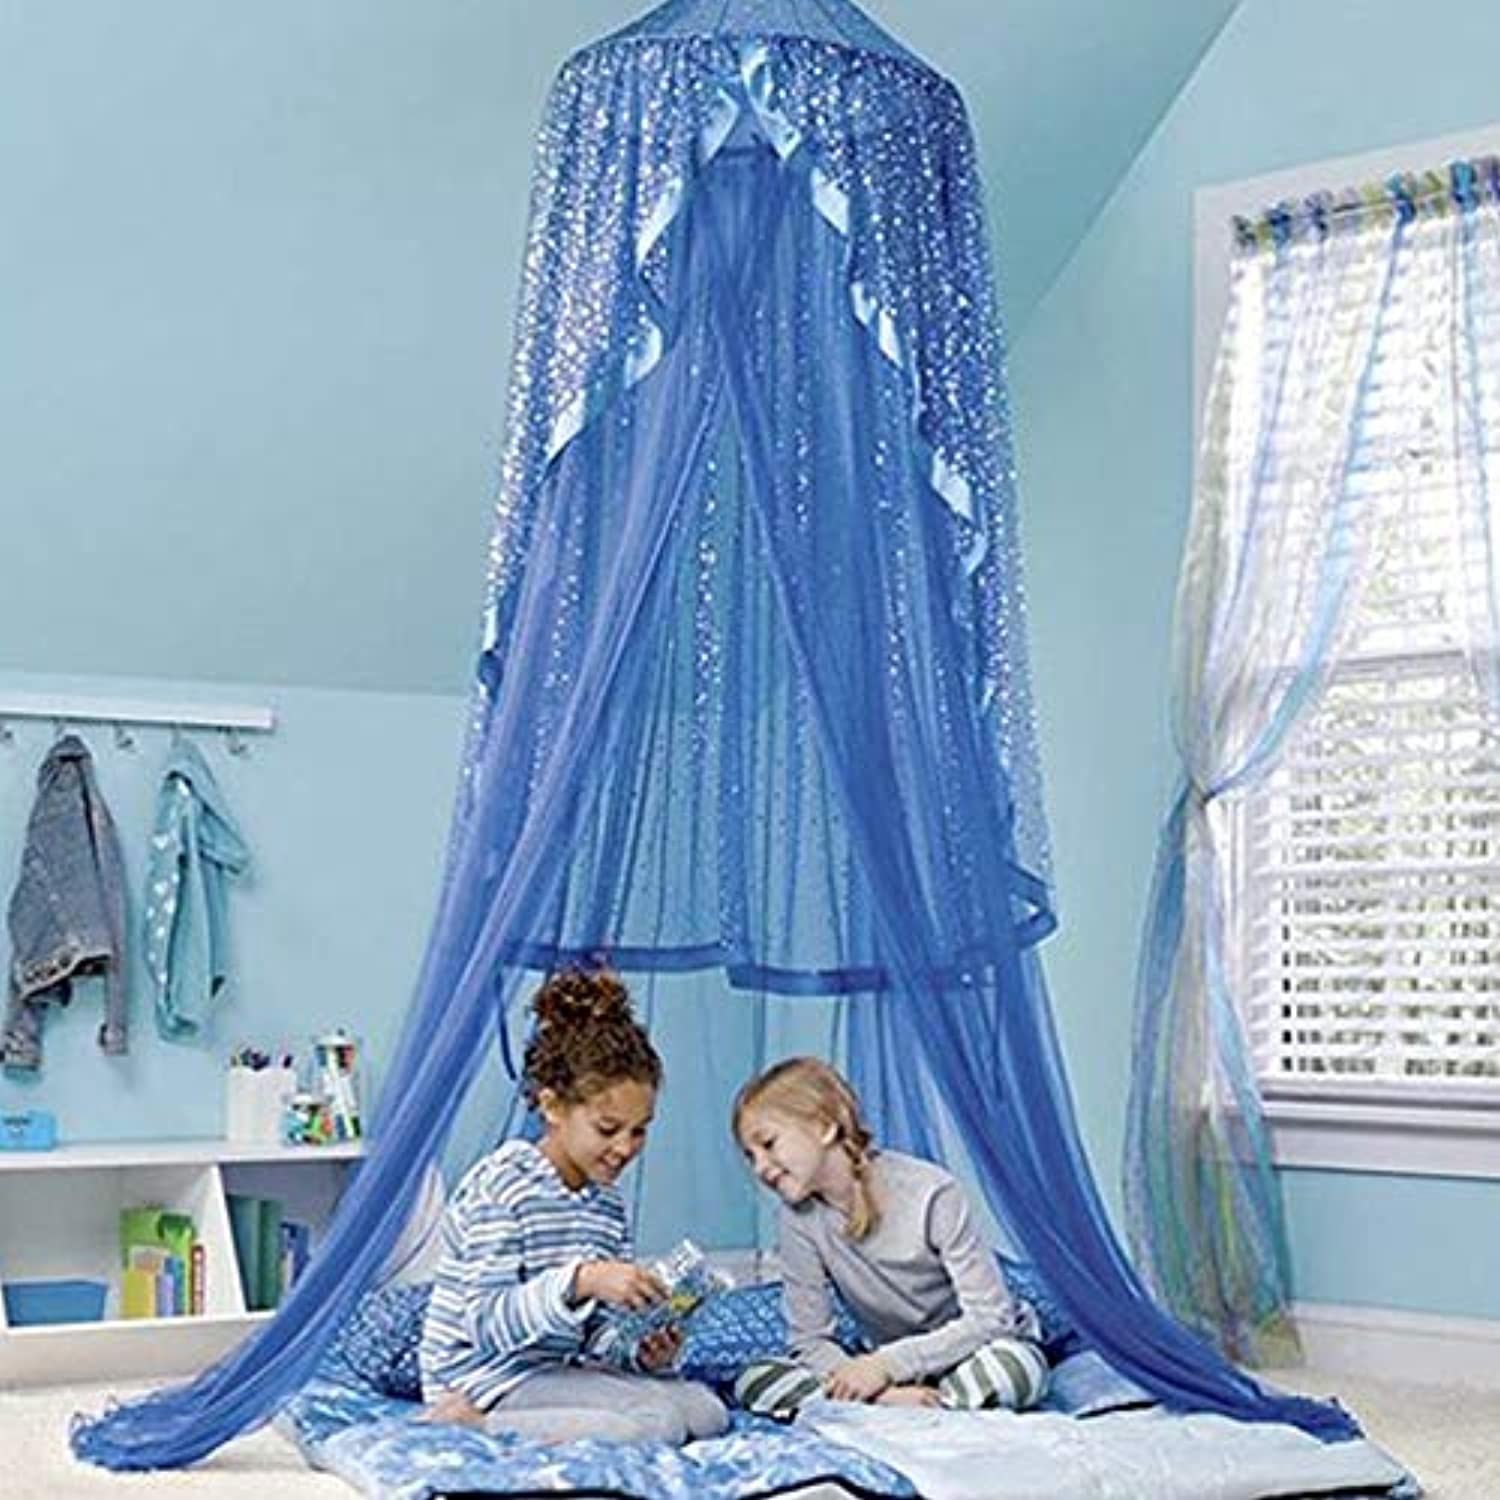 Baby Bed Sky Deco Canopy Mosquito Net Kids Princess Play Tents Decoration for Kids Room 270cm (color   bluee)